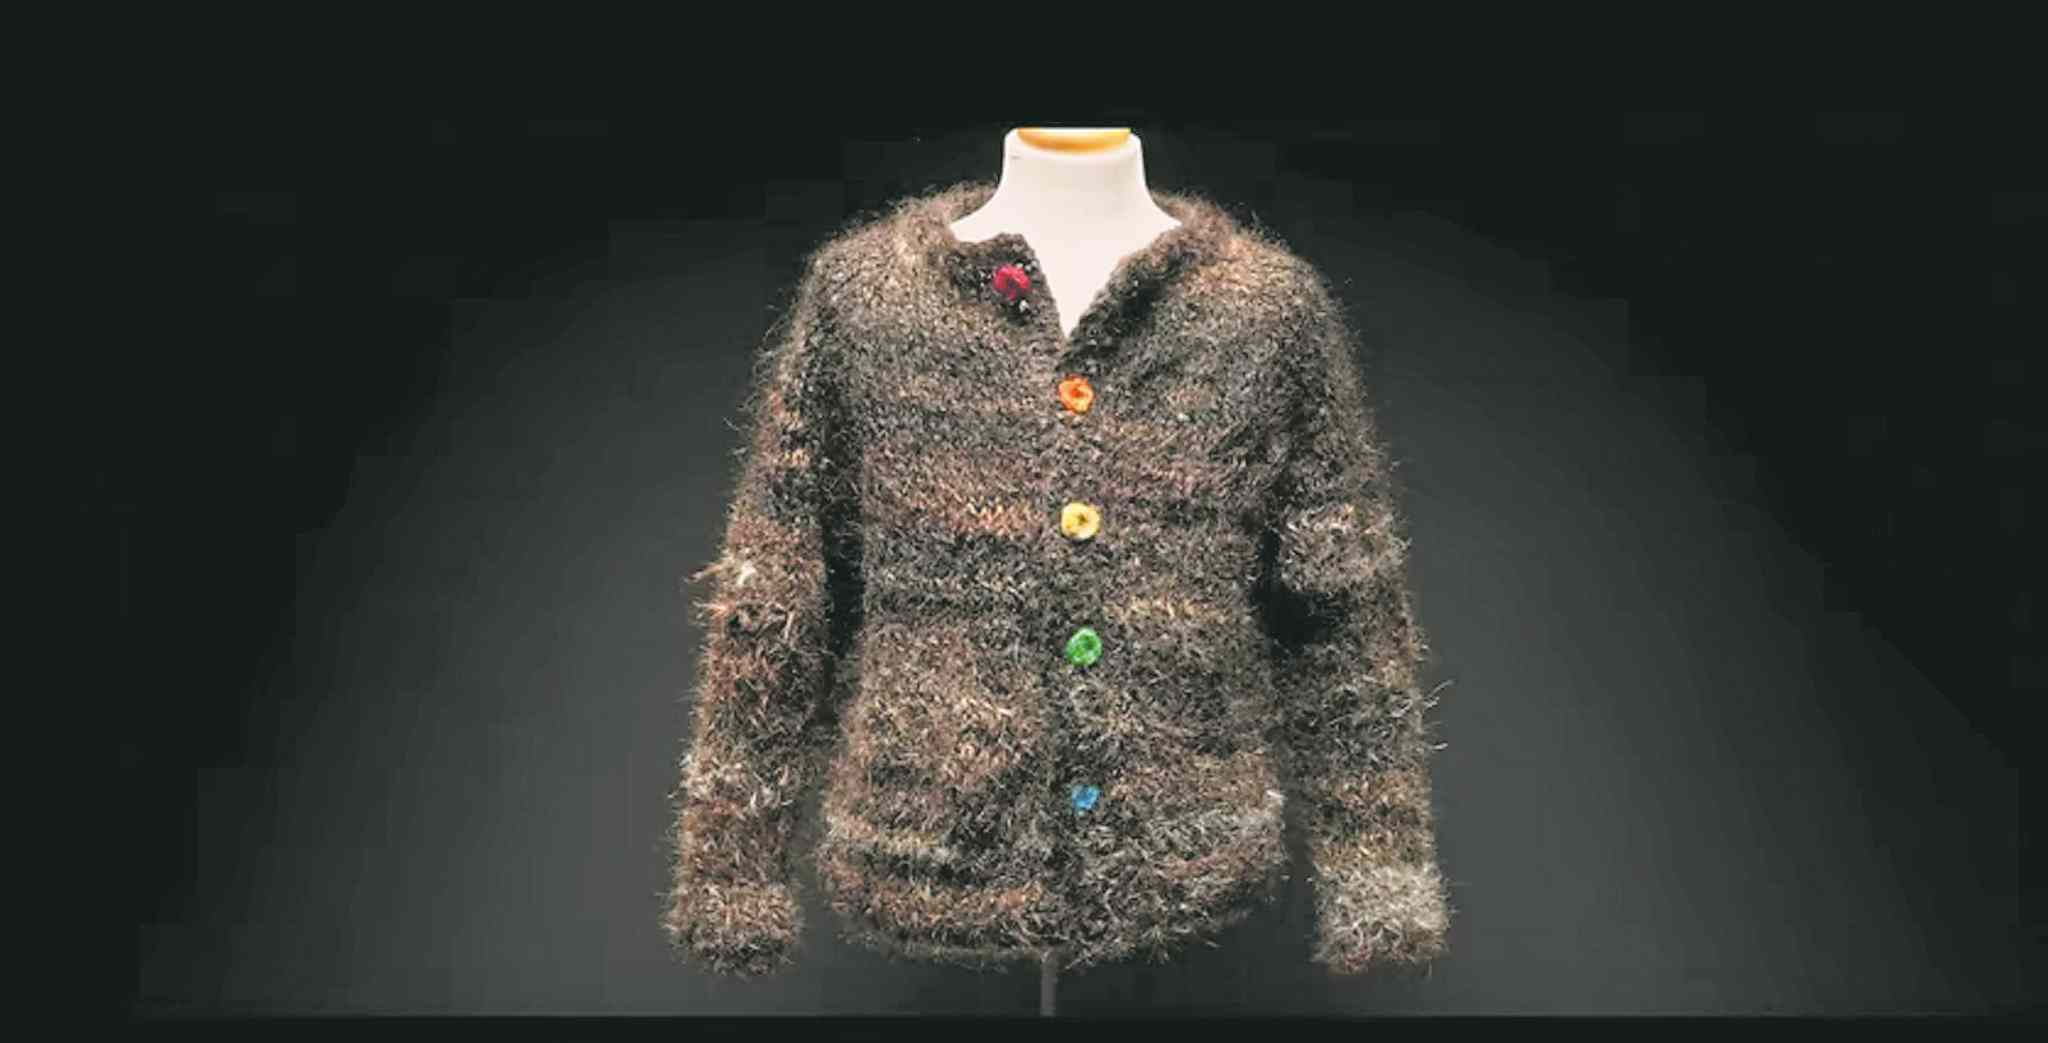 The Gay Sweater is woven from the hair of gay and transgender people.